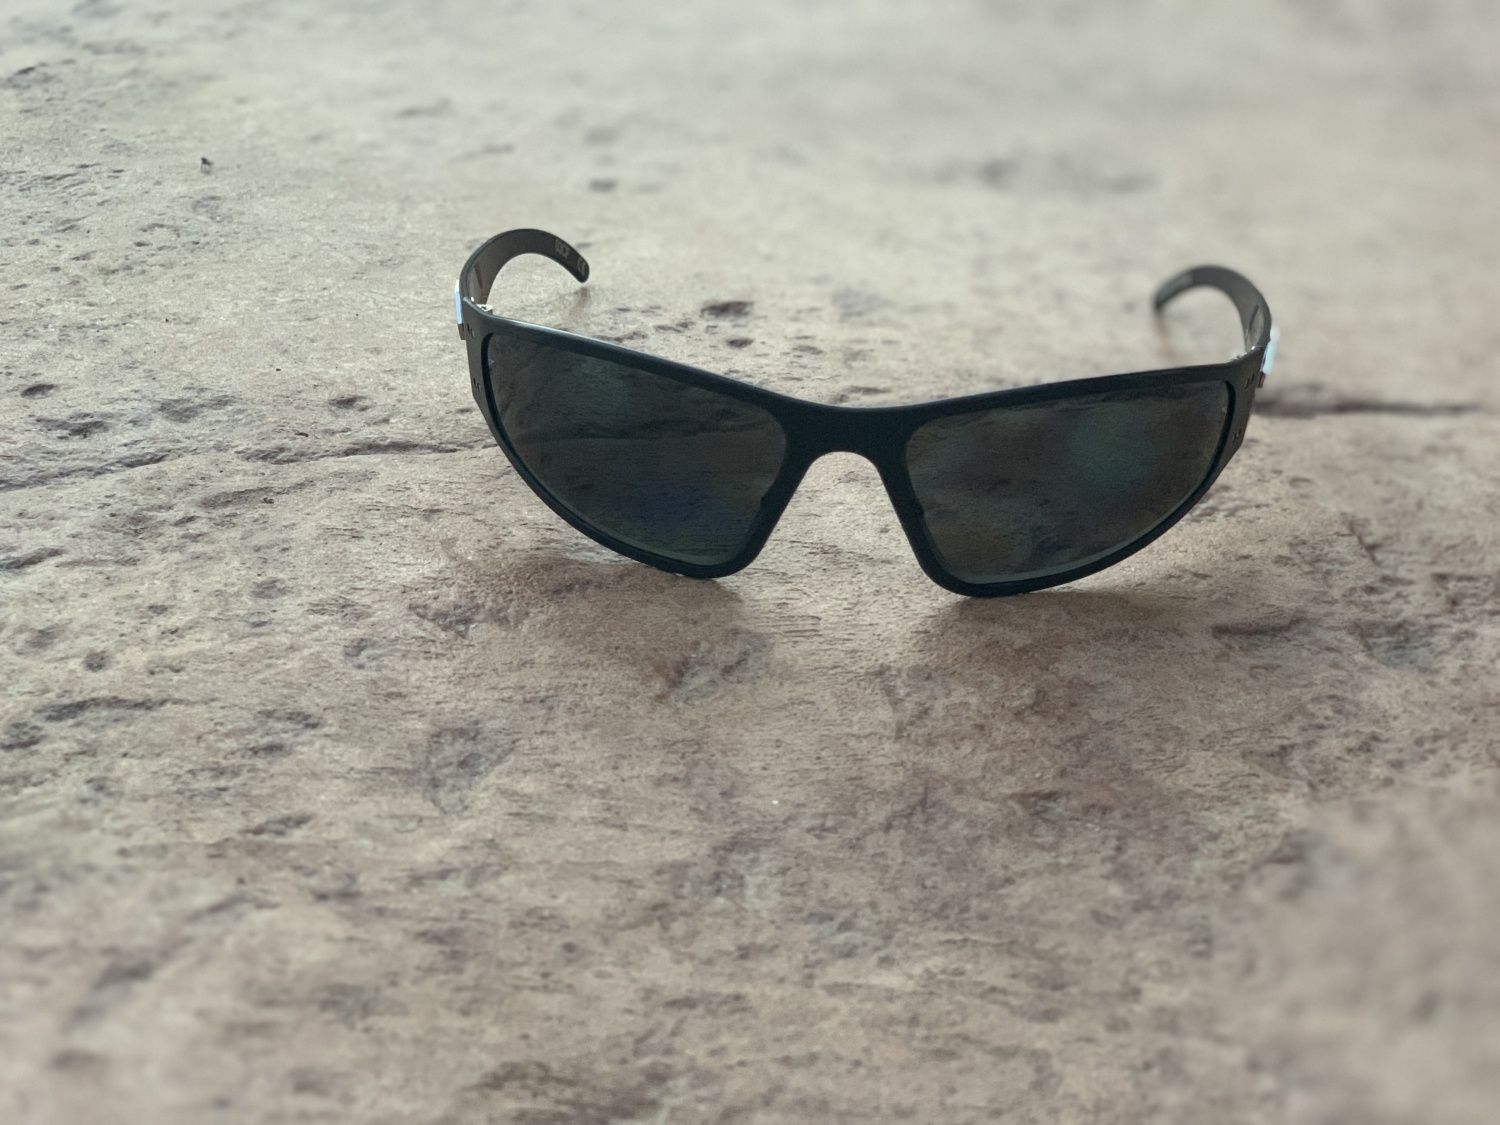 The only difference between this pair and the previous is that this model has the Optimized Polarized lenses.